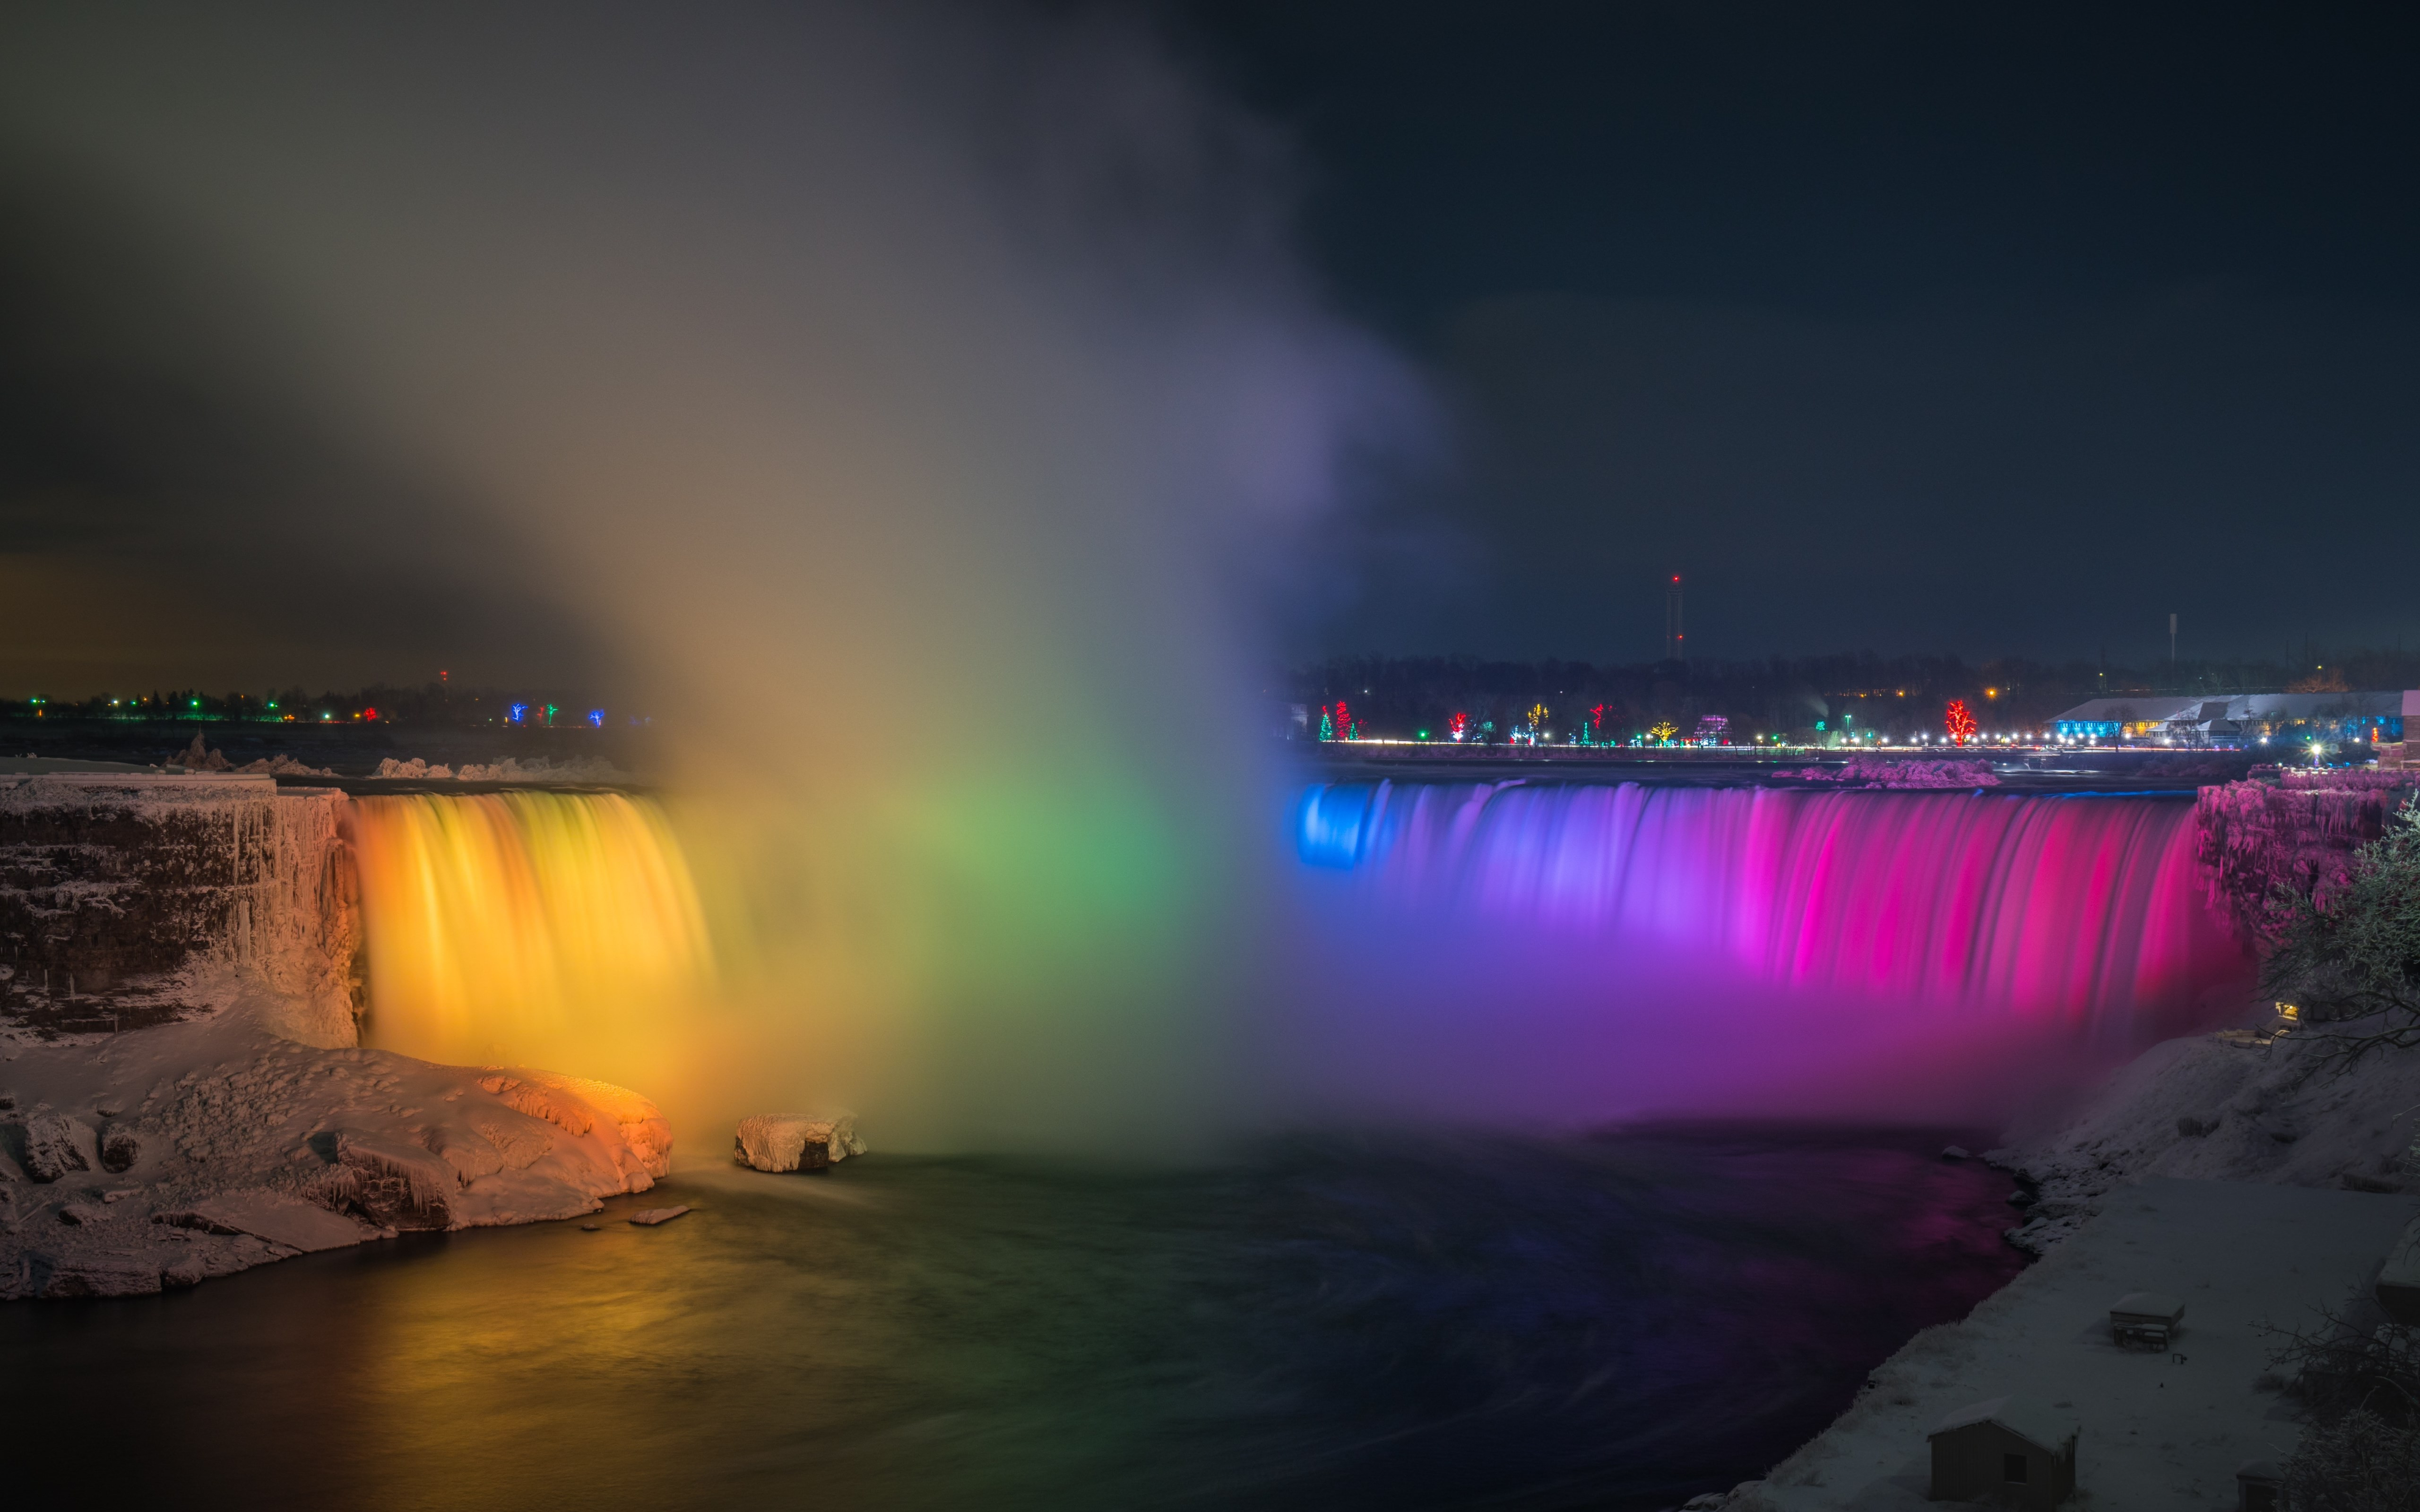 Free Desktop Wallpaper Niagara Falls Download Wallpaper Rainbow Over Niagara Falls 5120x3200